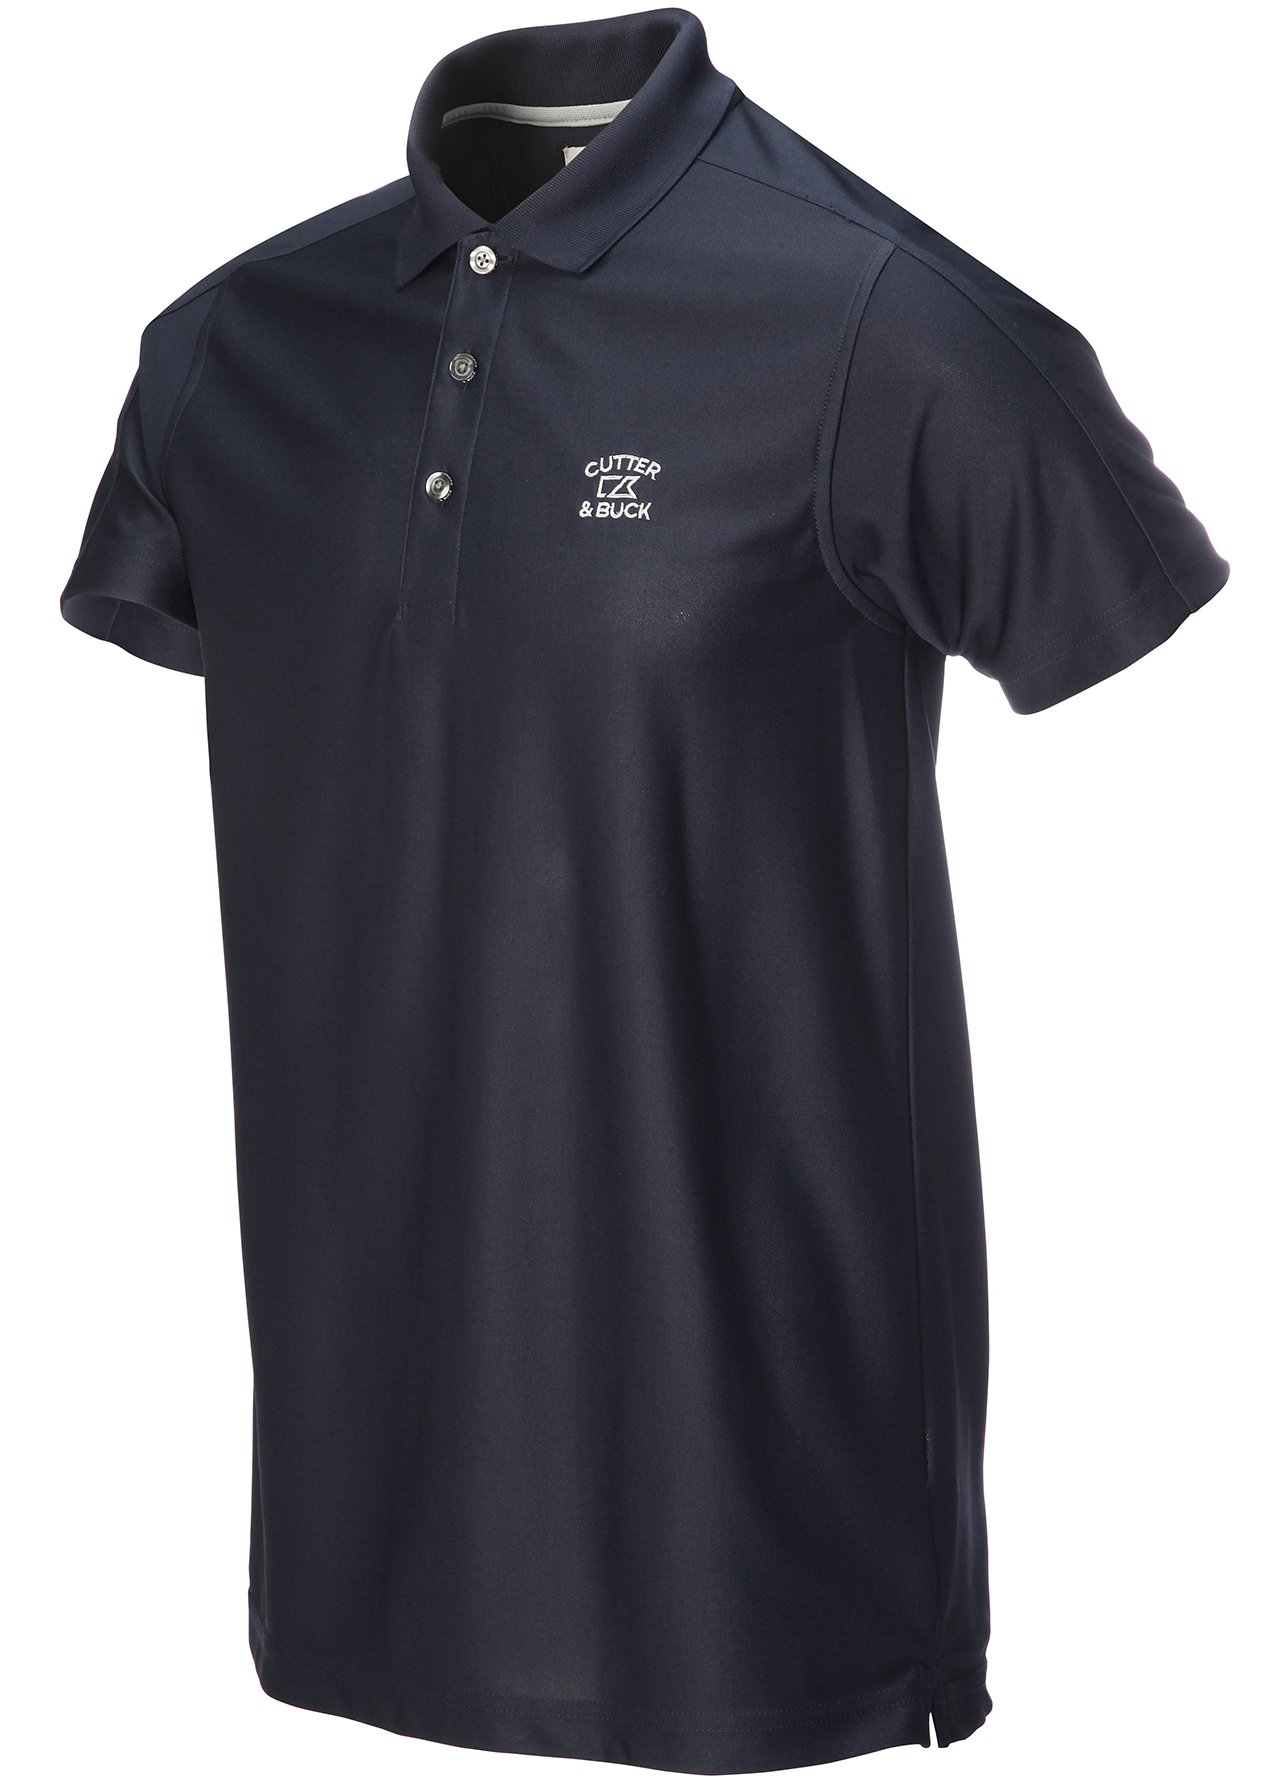 Golf clothing shirts navy cutter buck drytec genre for Cutter buck polo shirt size chart